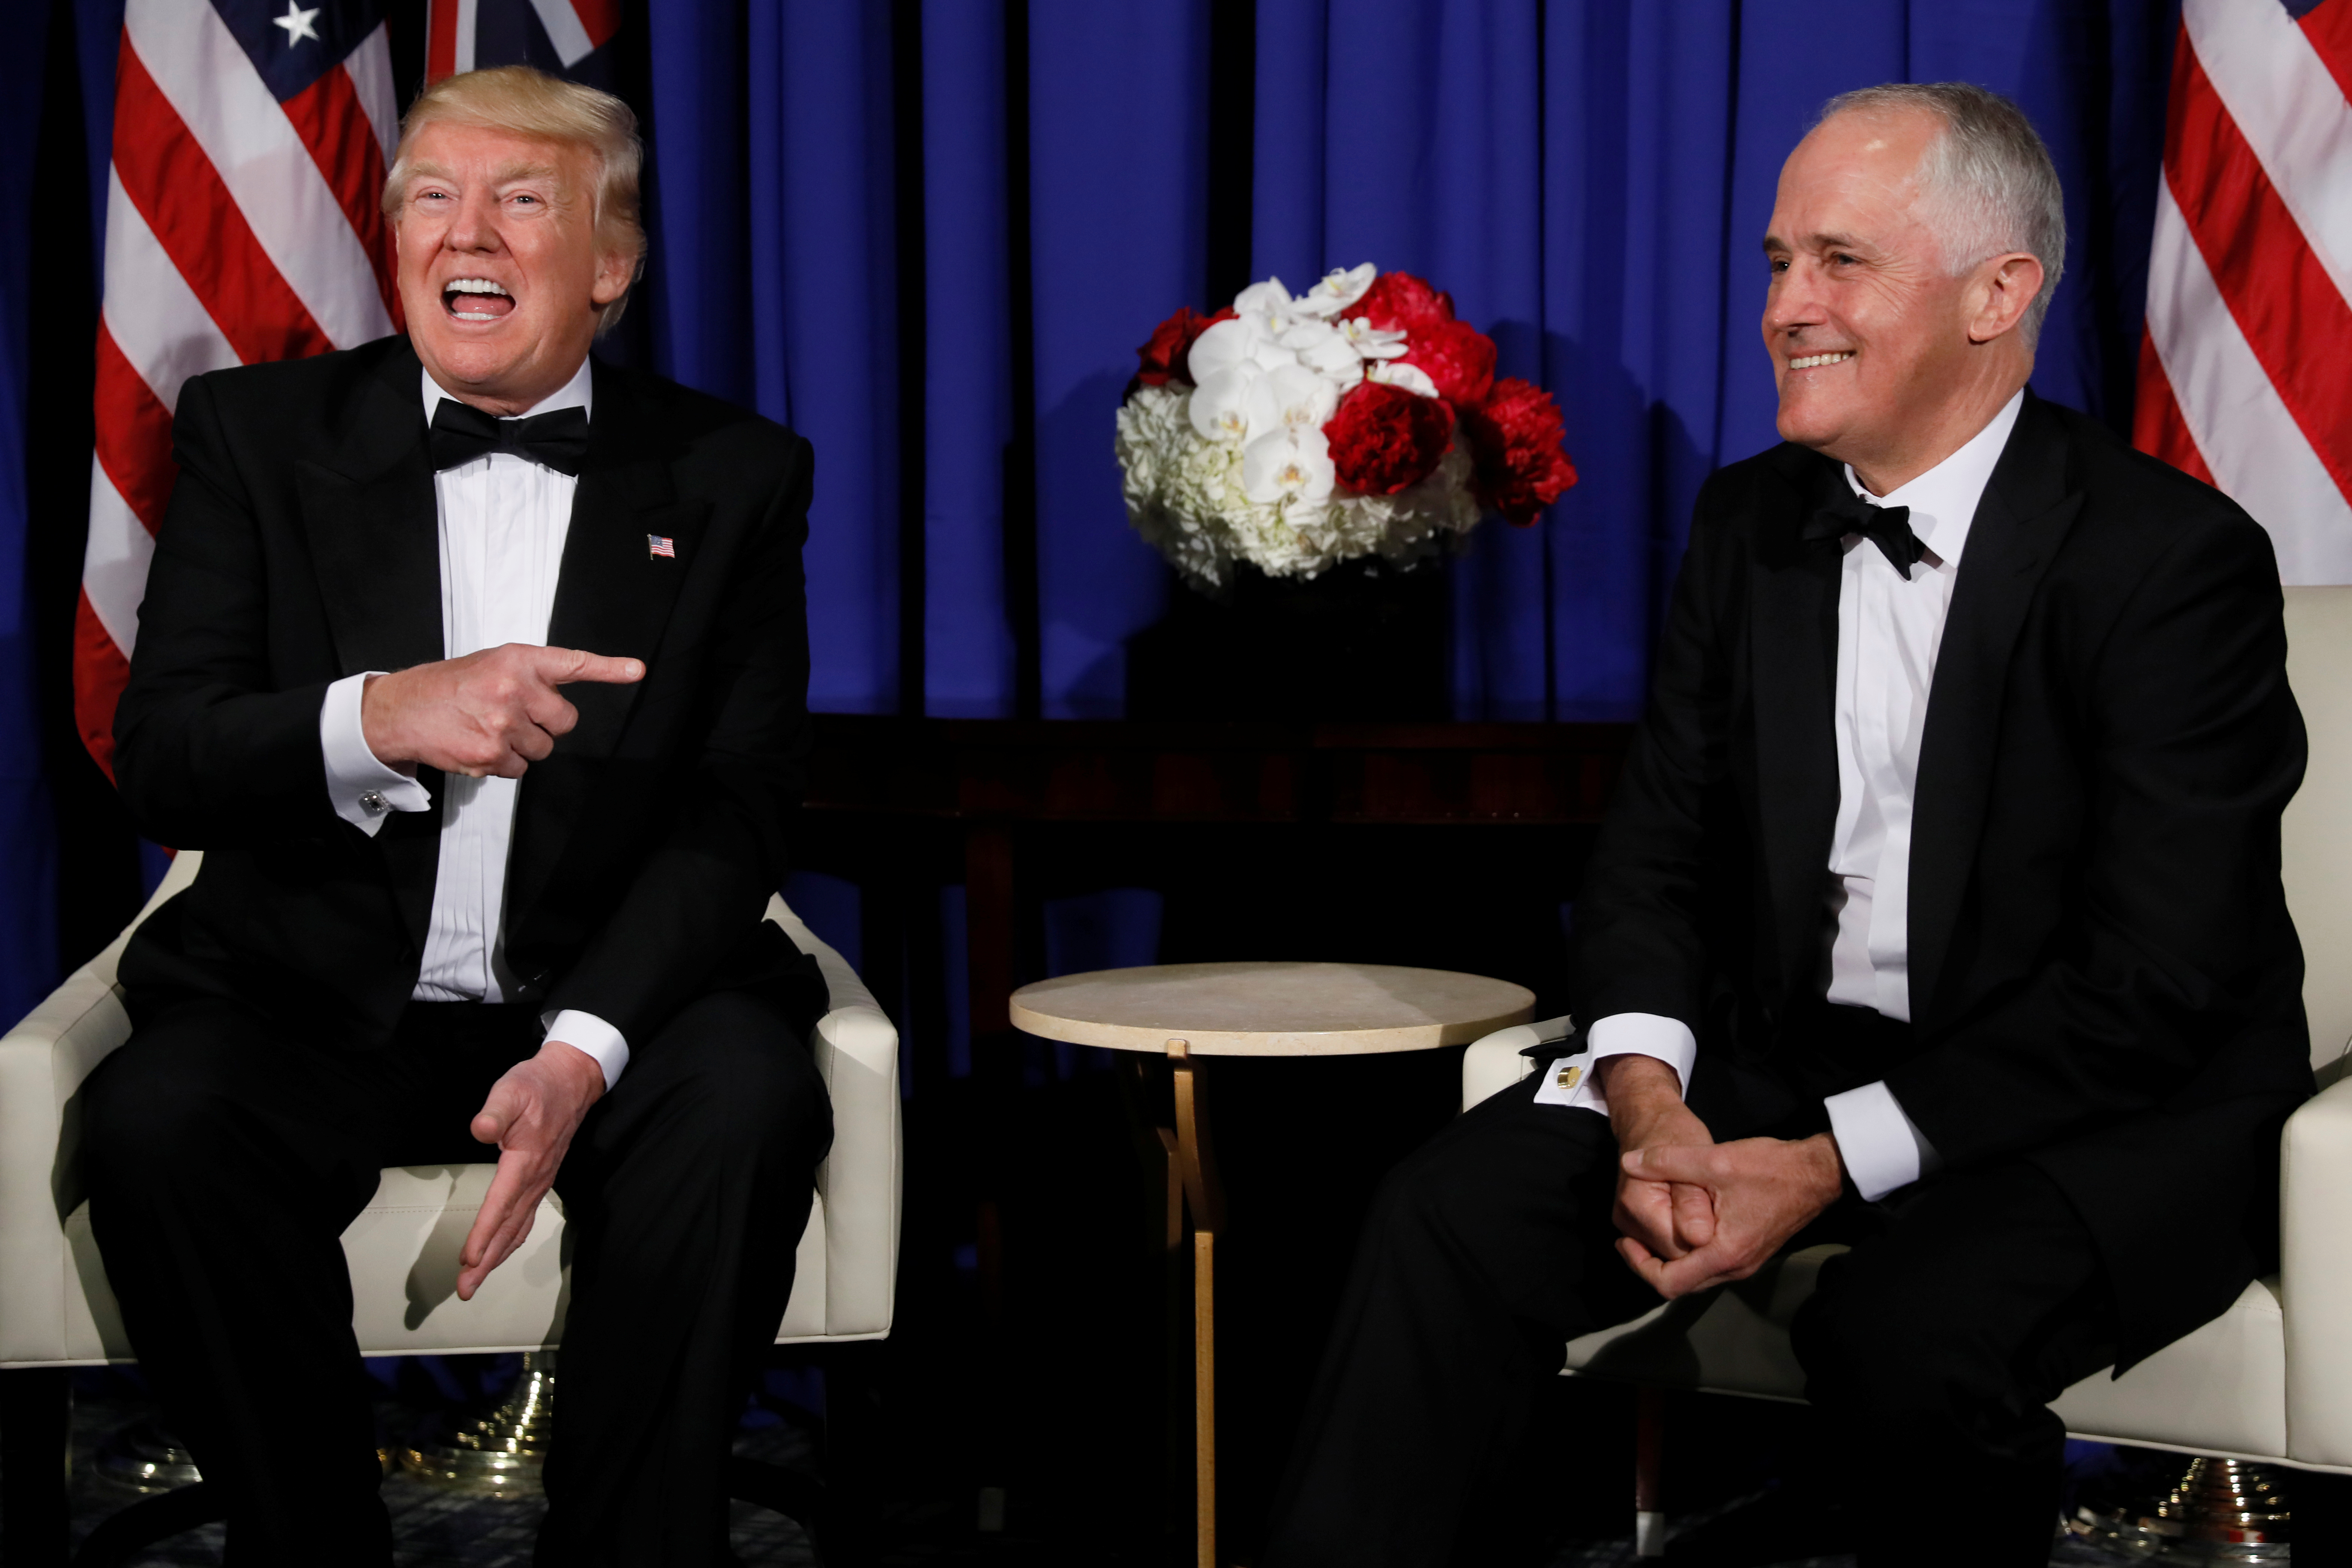 President Trump and Australia's Prime Minister Malcolm Turnbull deliver remarks to reporters as they meet in New York, May 4, 2017.